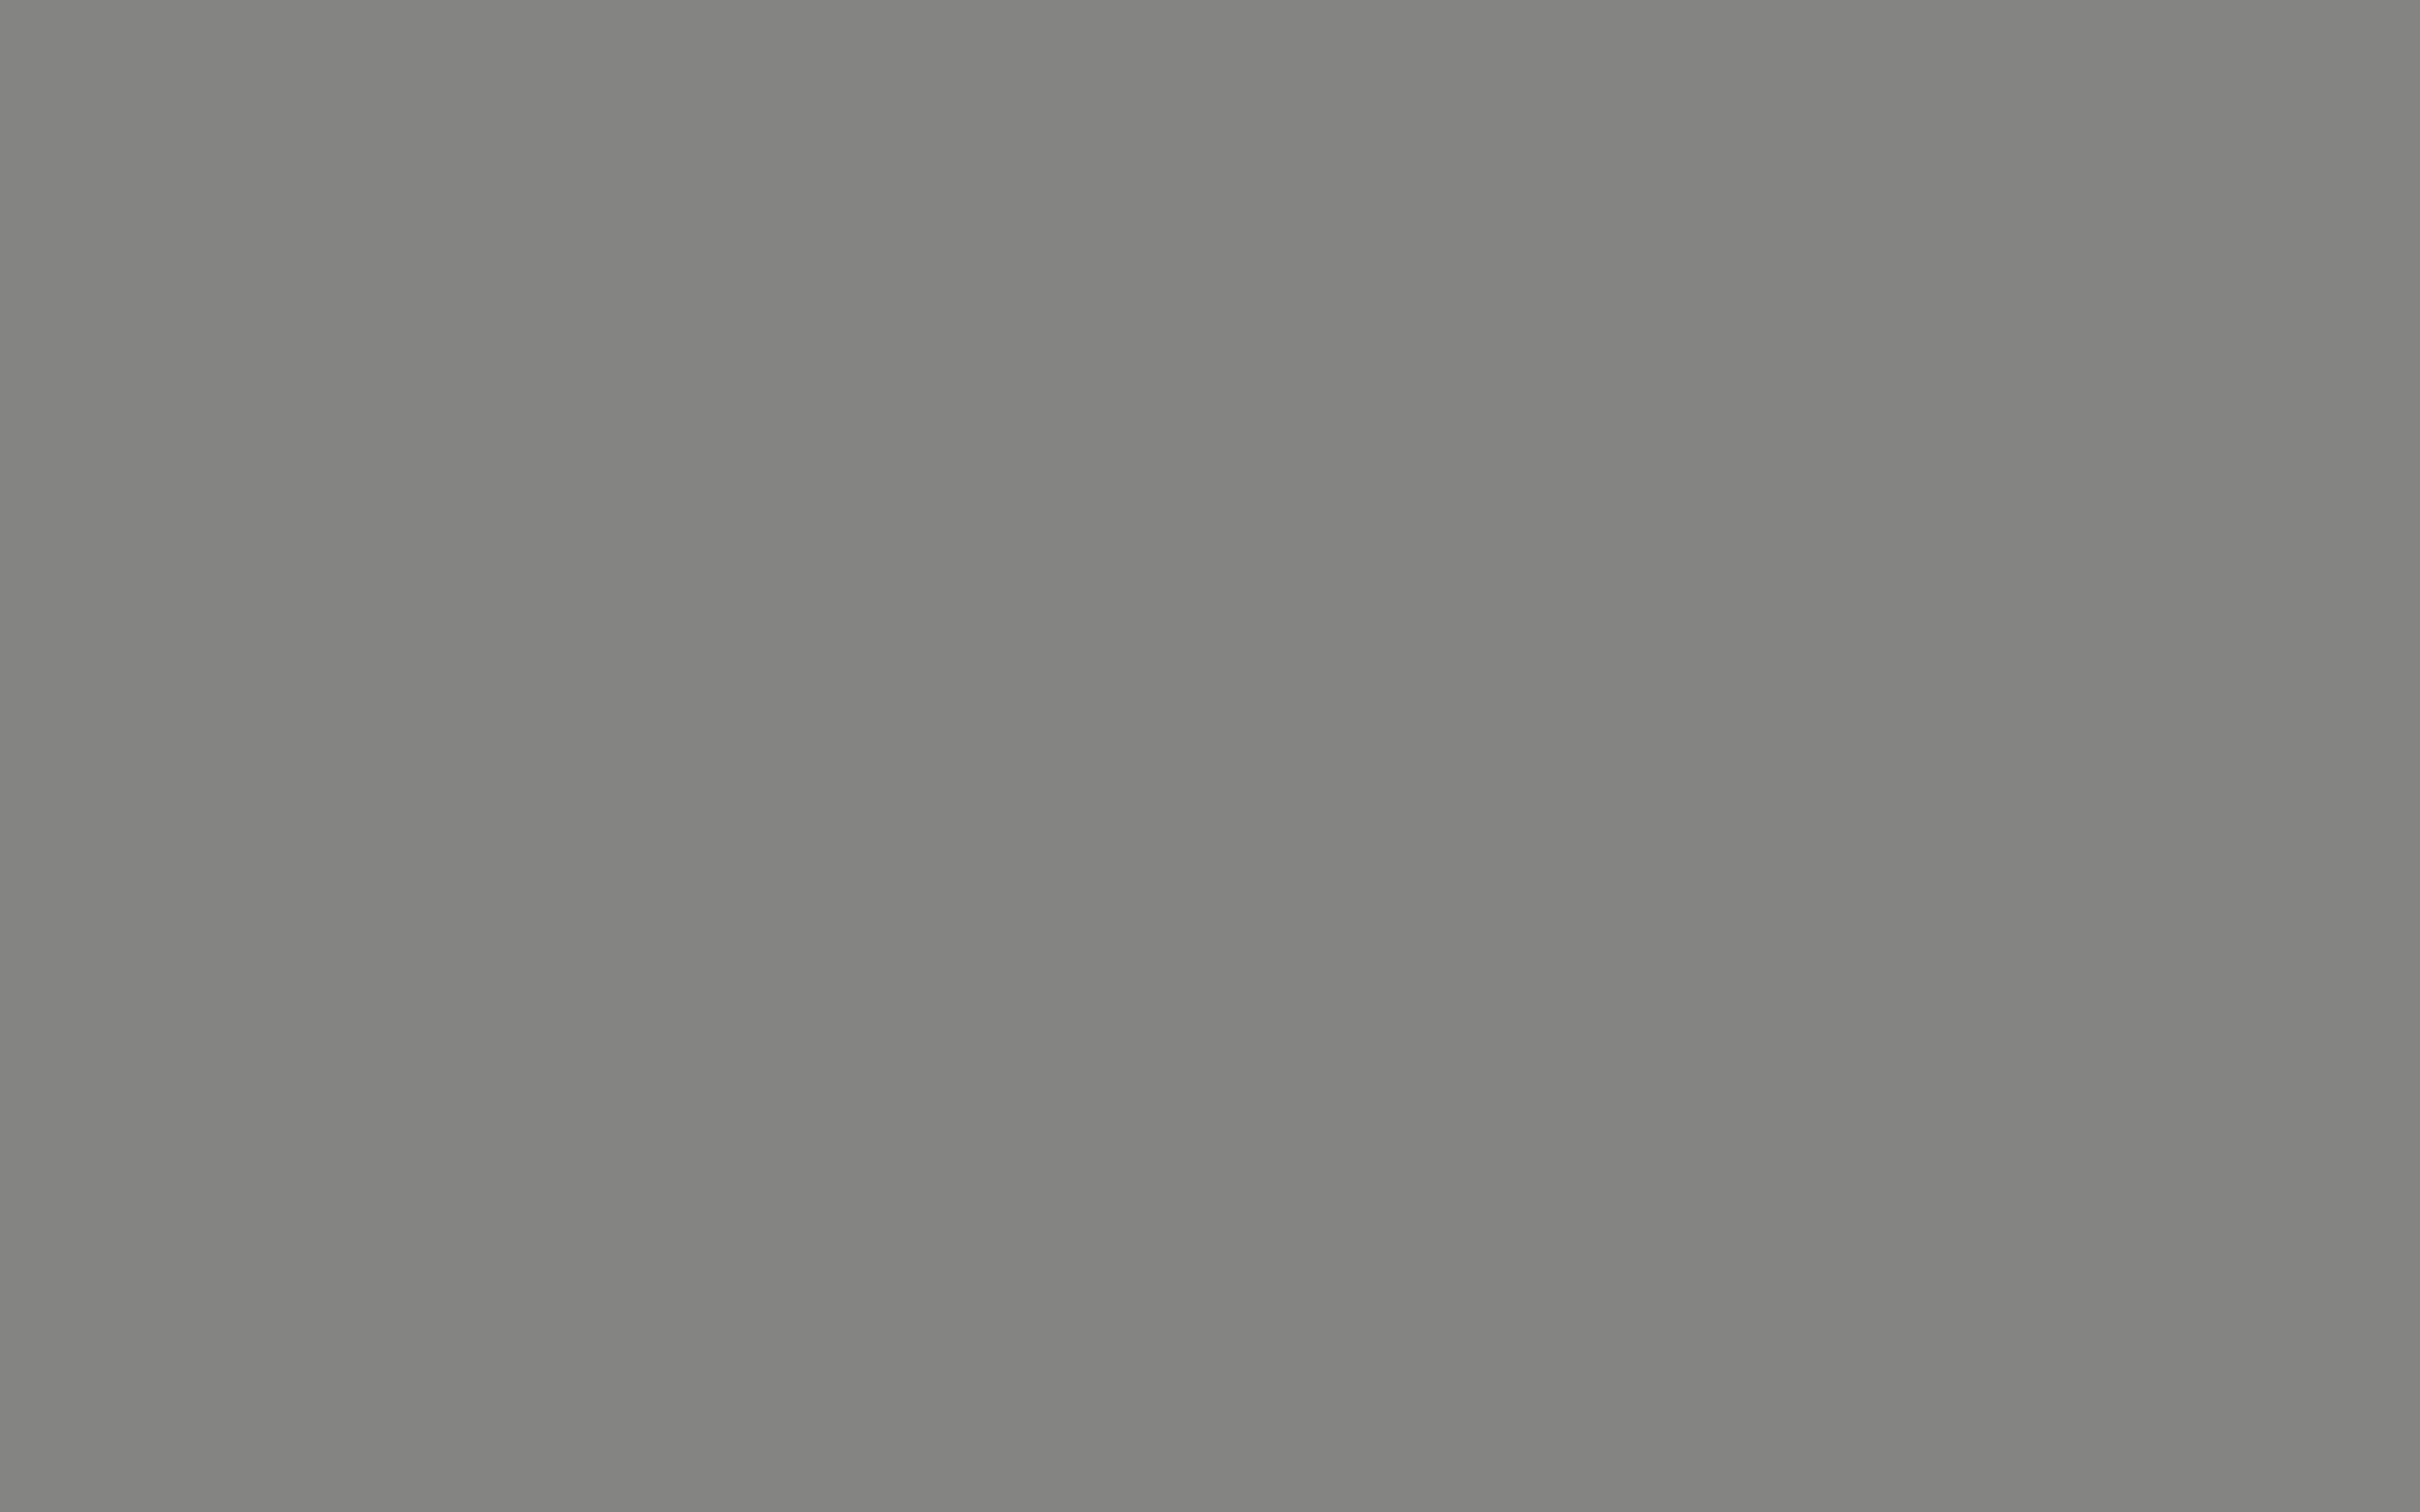 Solid Gray Wallpaper 50 Images